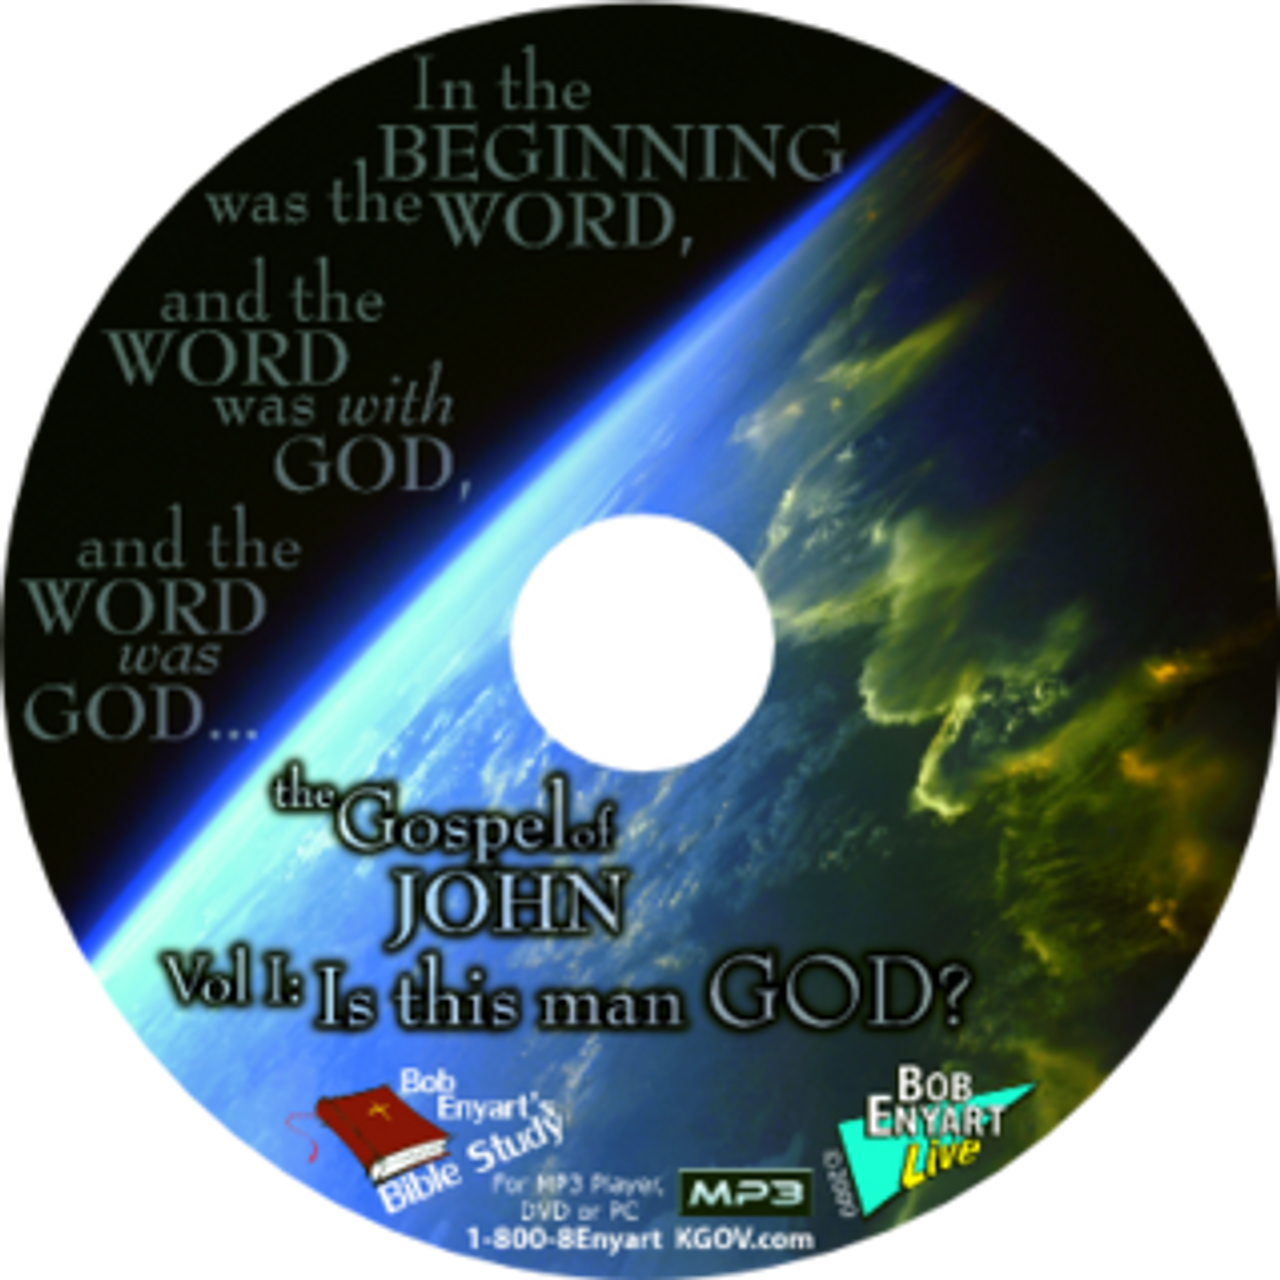 Listen to Bob's verse-by-verse study of the Gospel of John in 3 volumes.